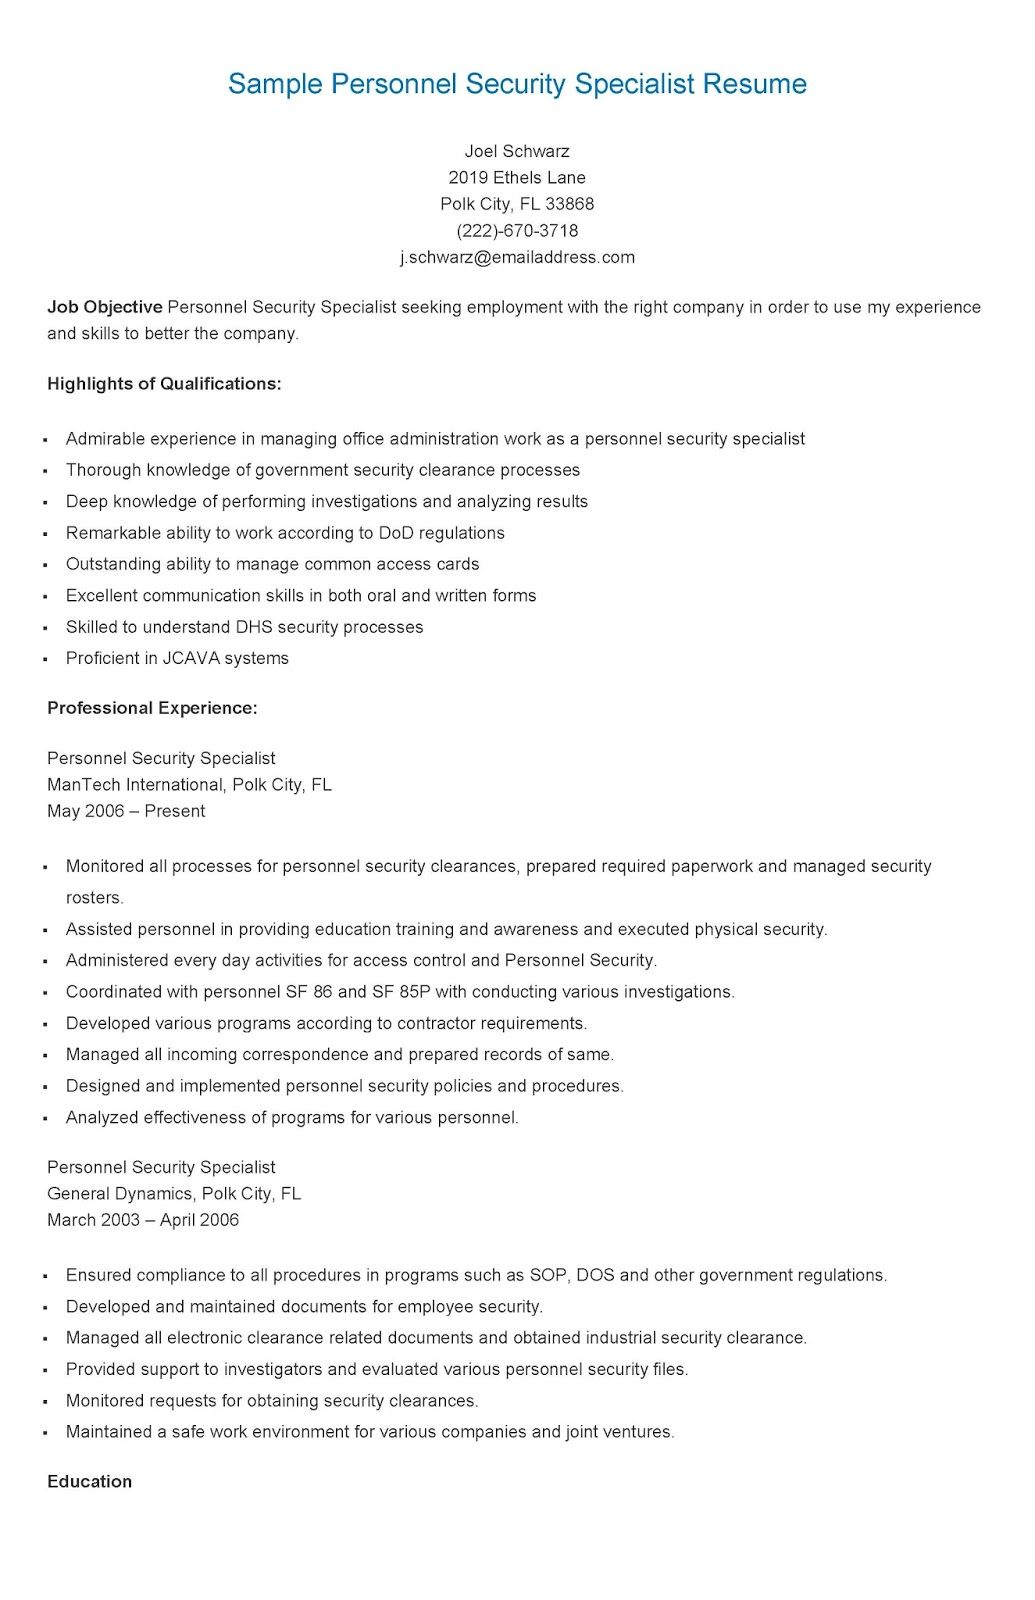 Sample Personnel Security Specialist Resume With Images Resume